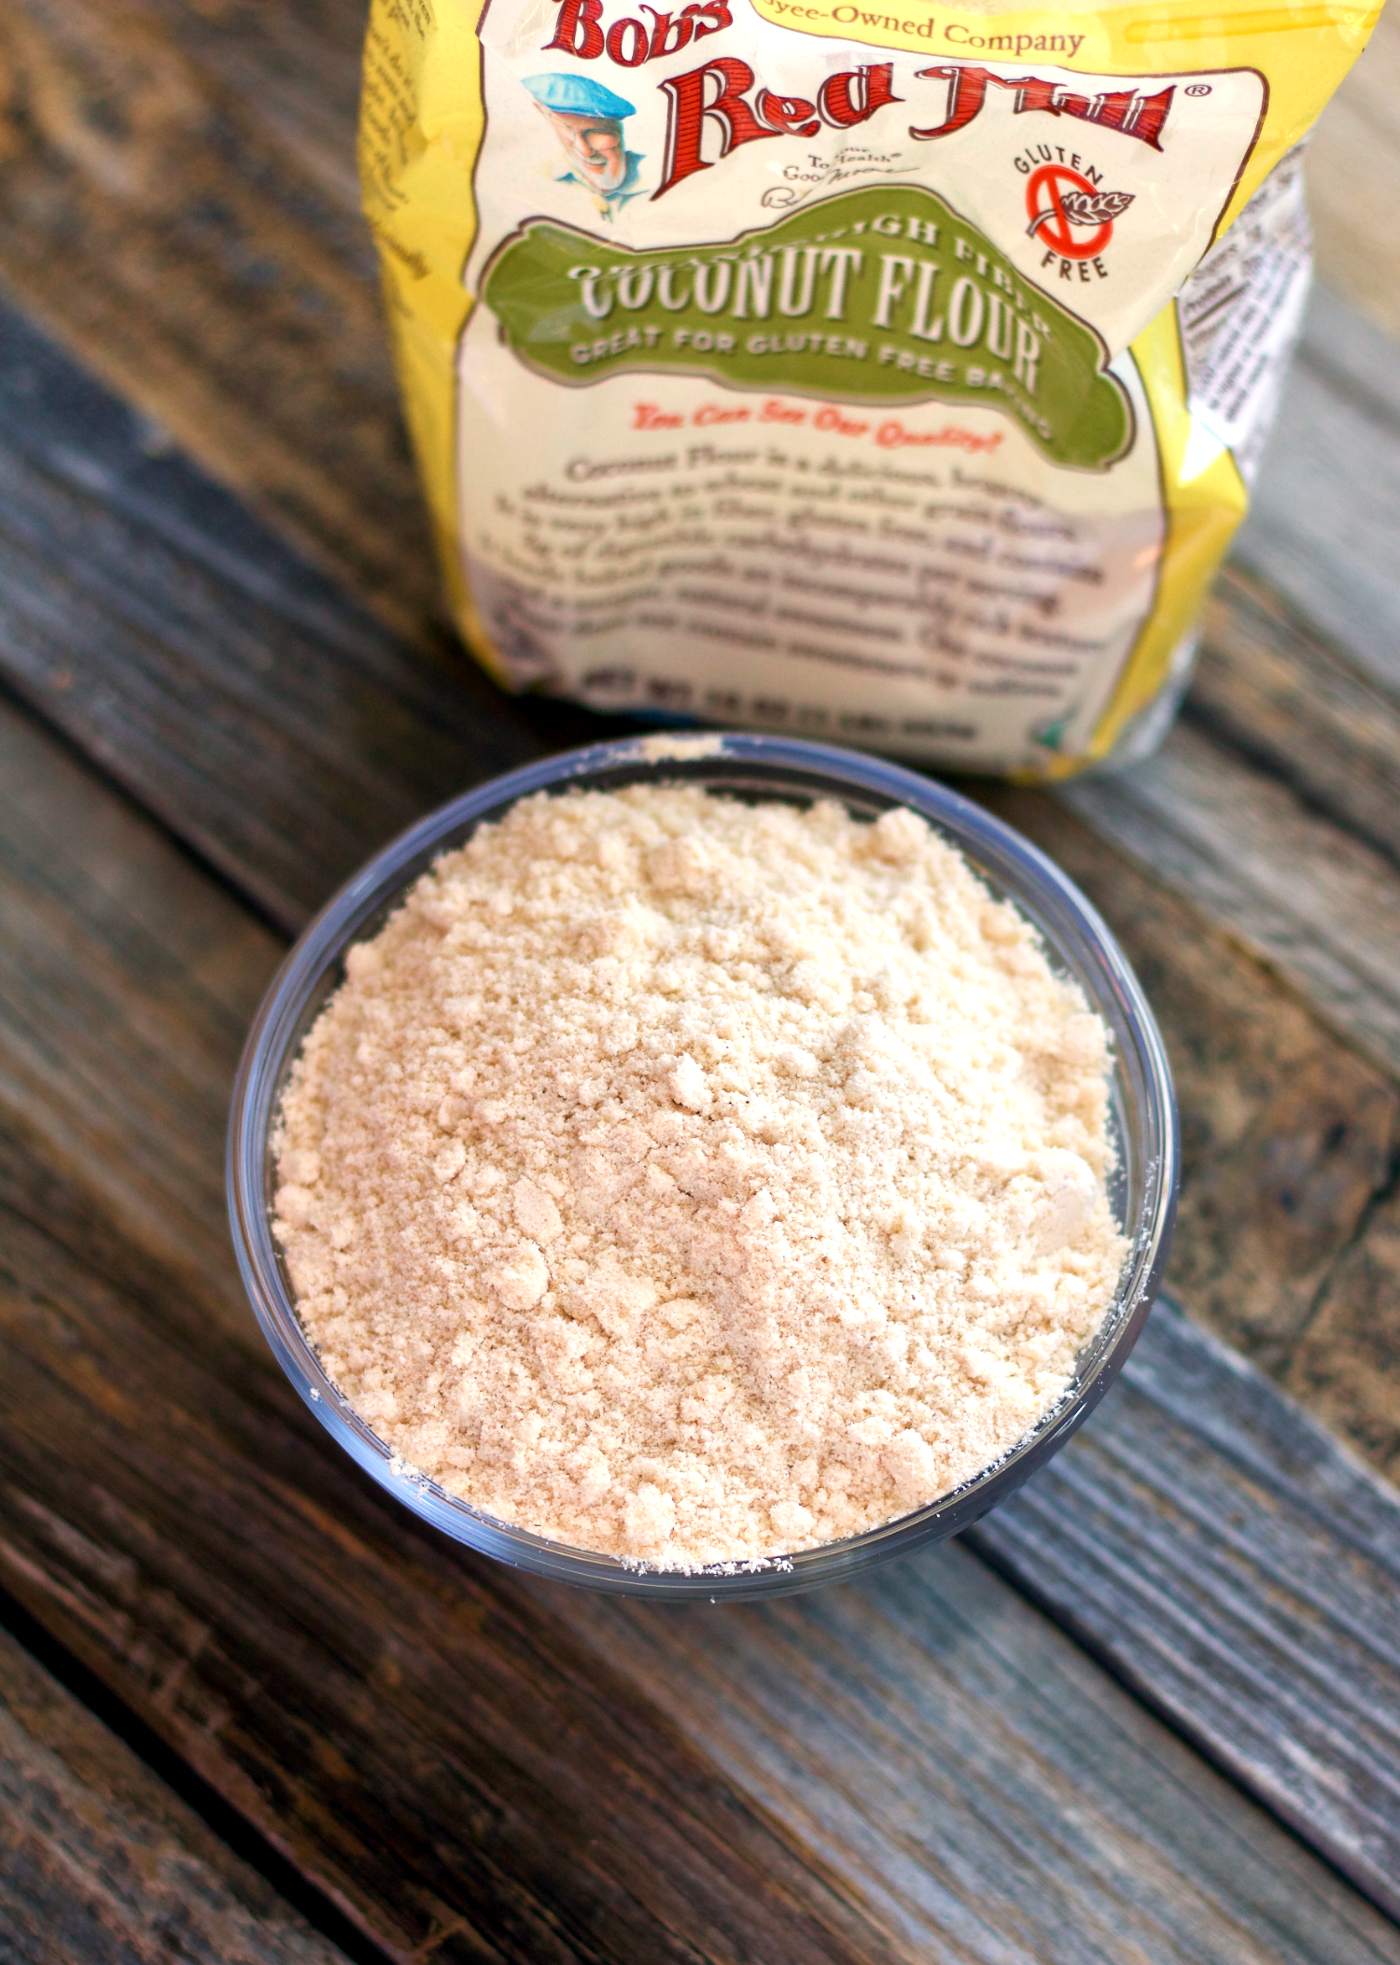 Meet Your Ingredients: Coconut Flour